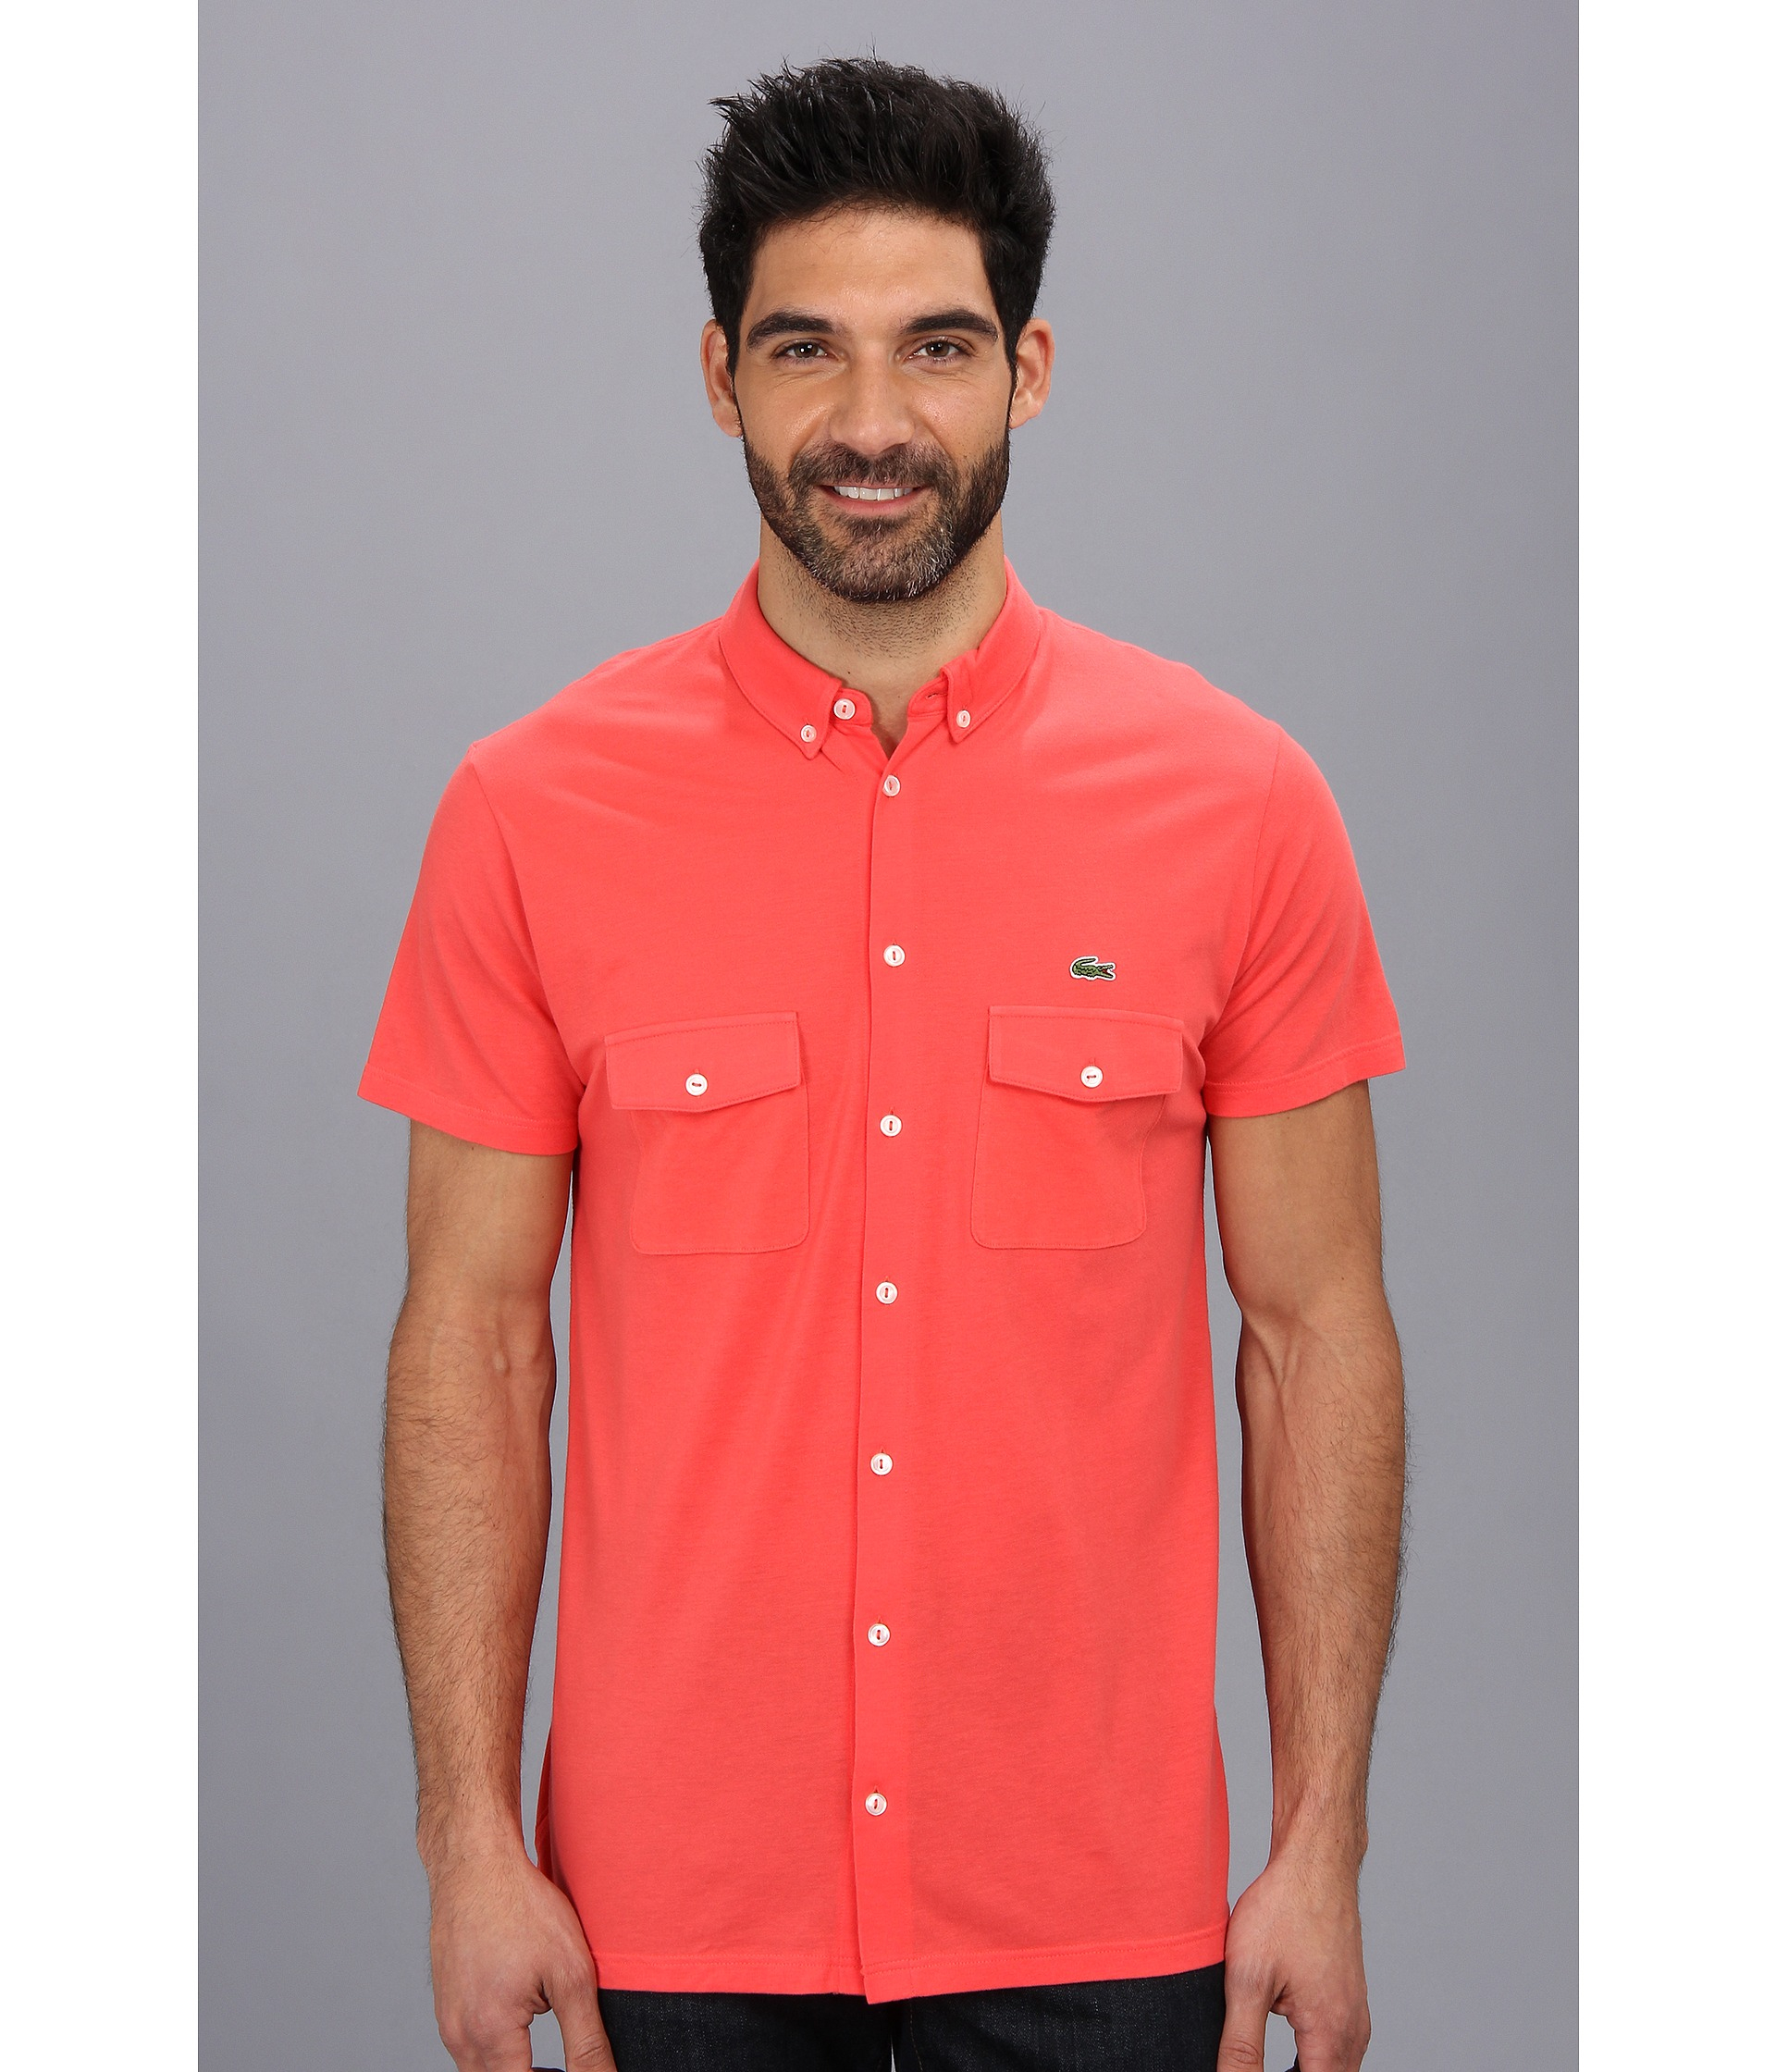 Lacoste Short Sleeve Full Button Double Pocket Micro Pique